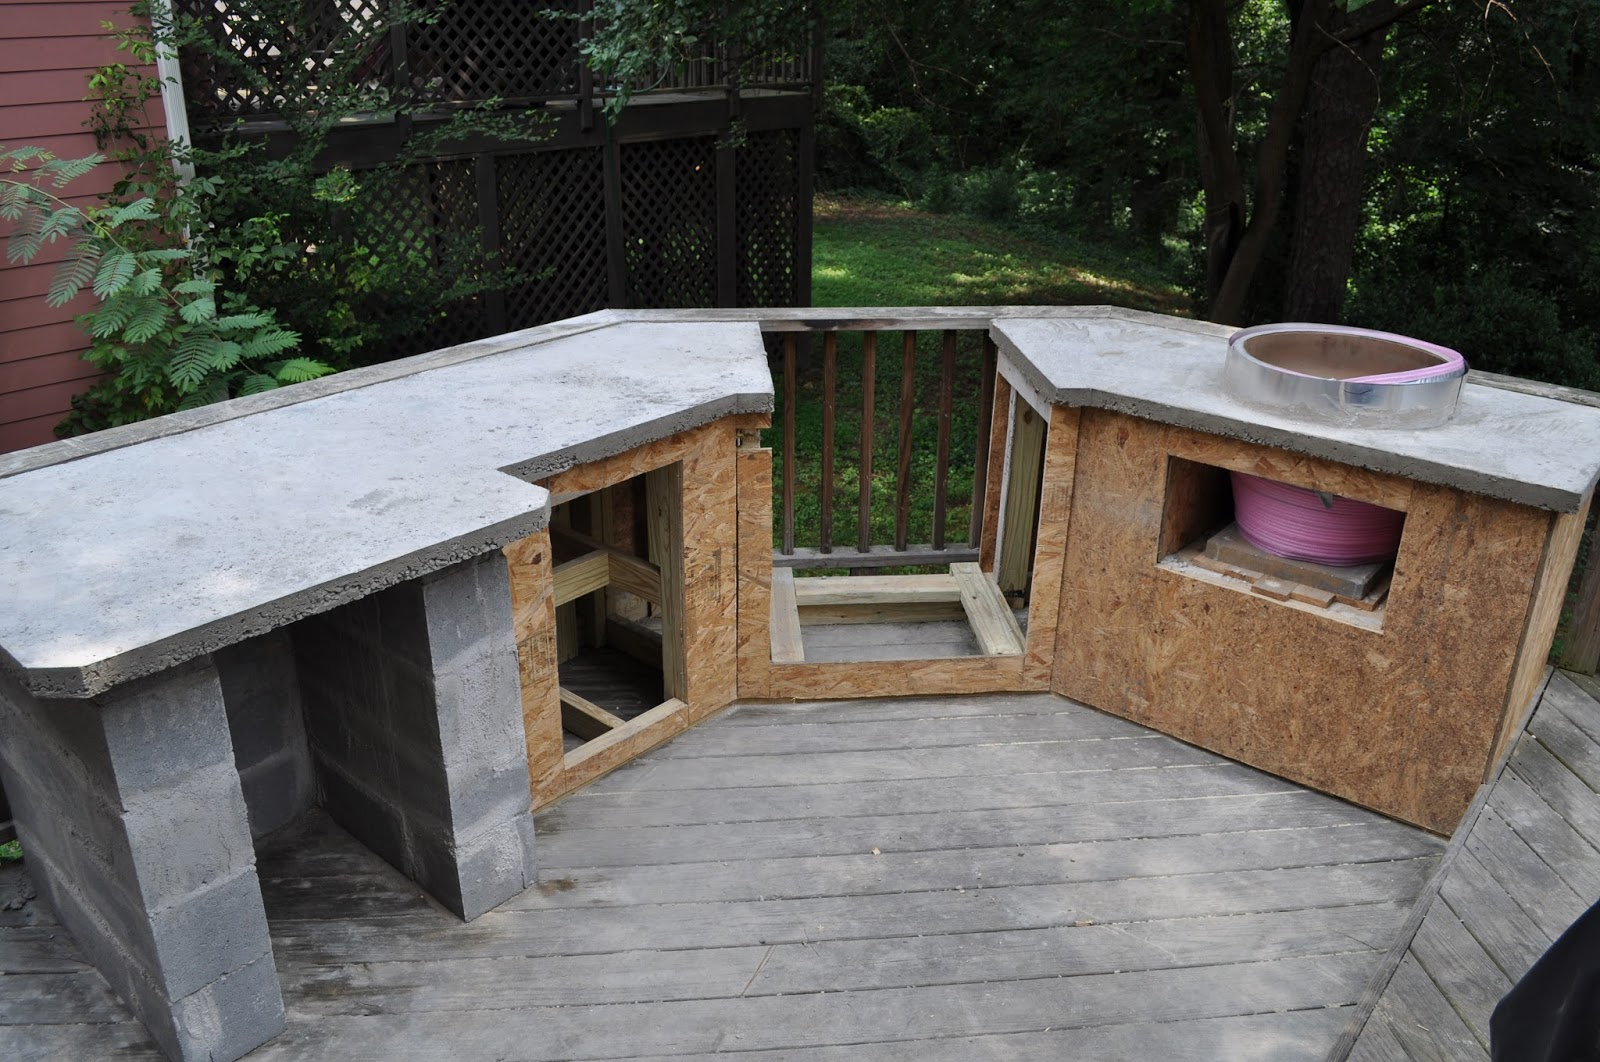 Outdoor Kitchen Frame Small Plans The Cow Spot Part 2